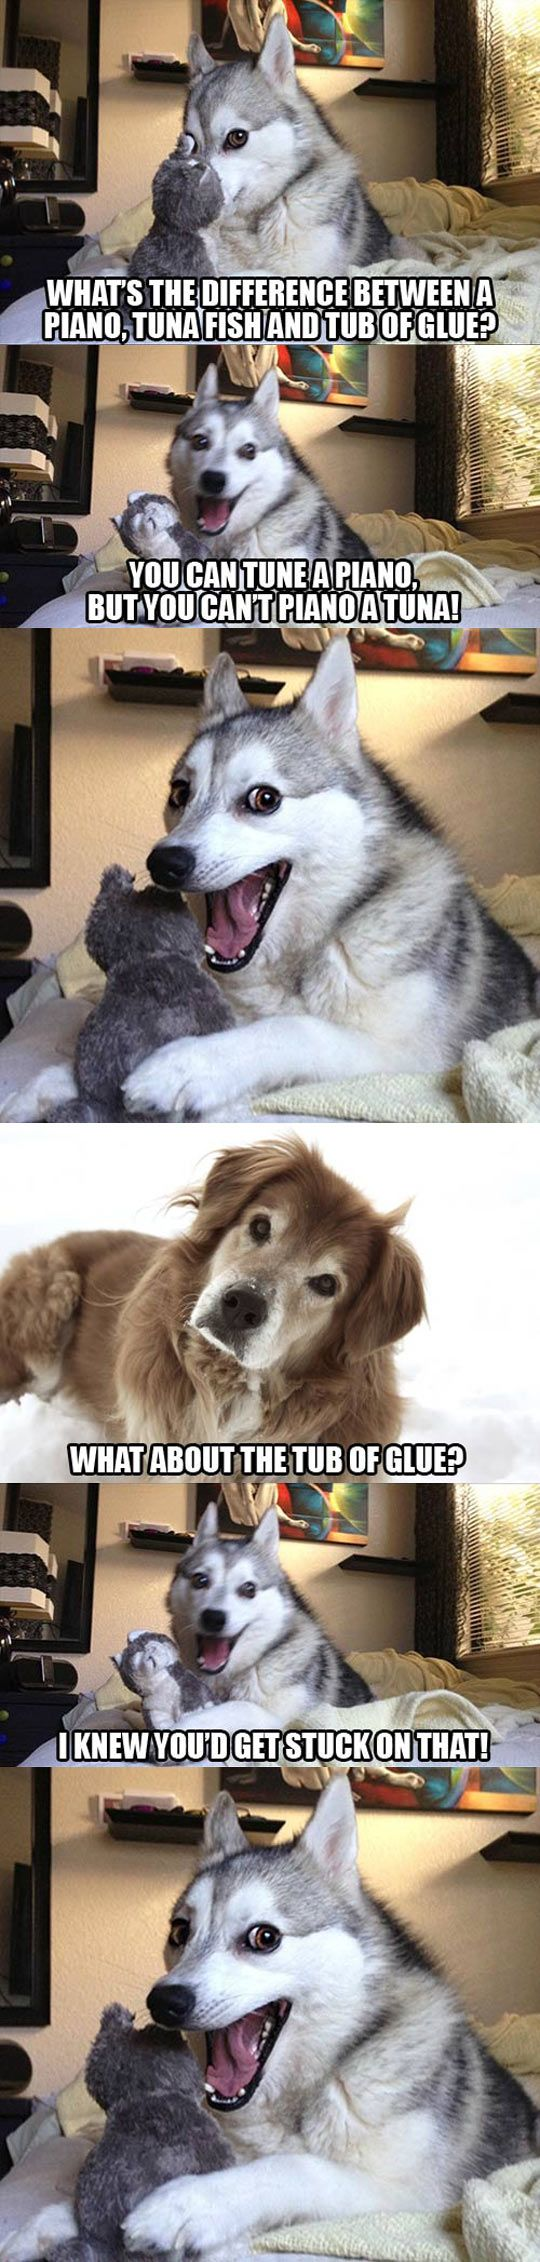 Huskies Tell The Best Jokes